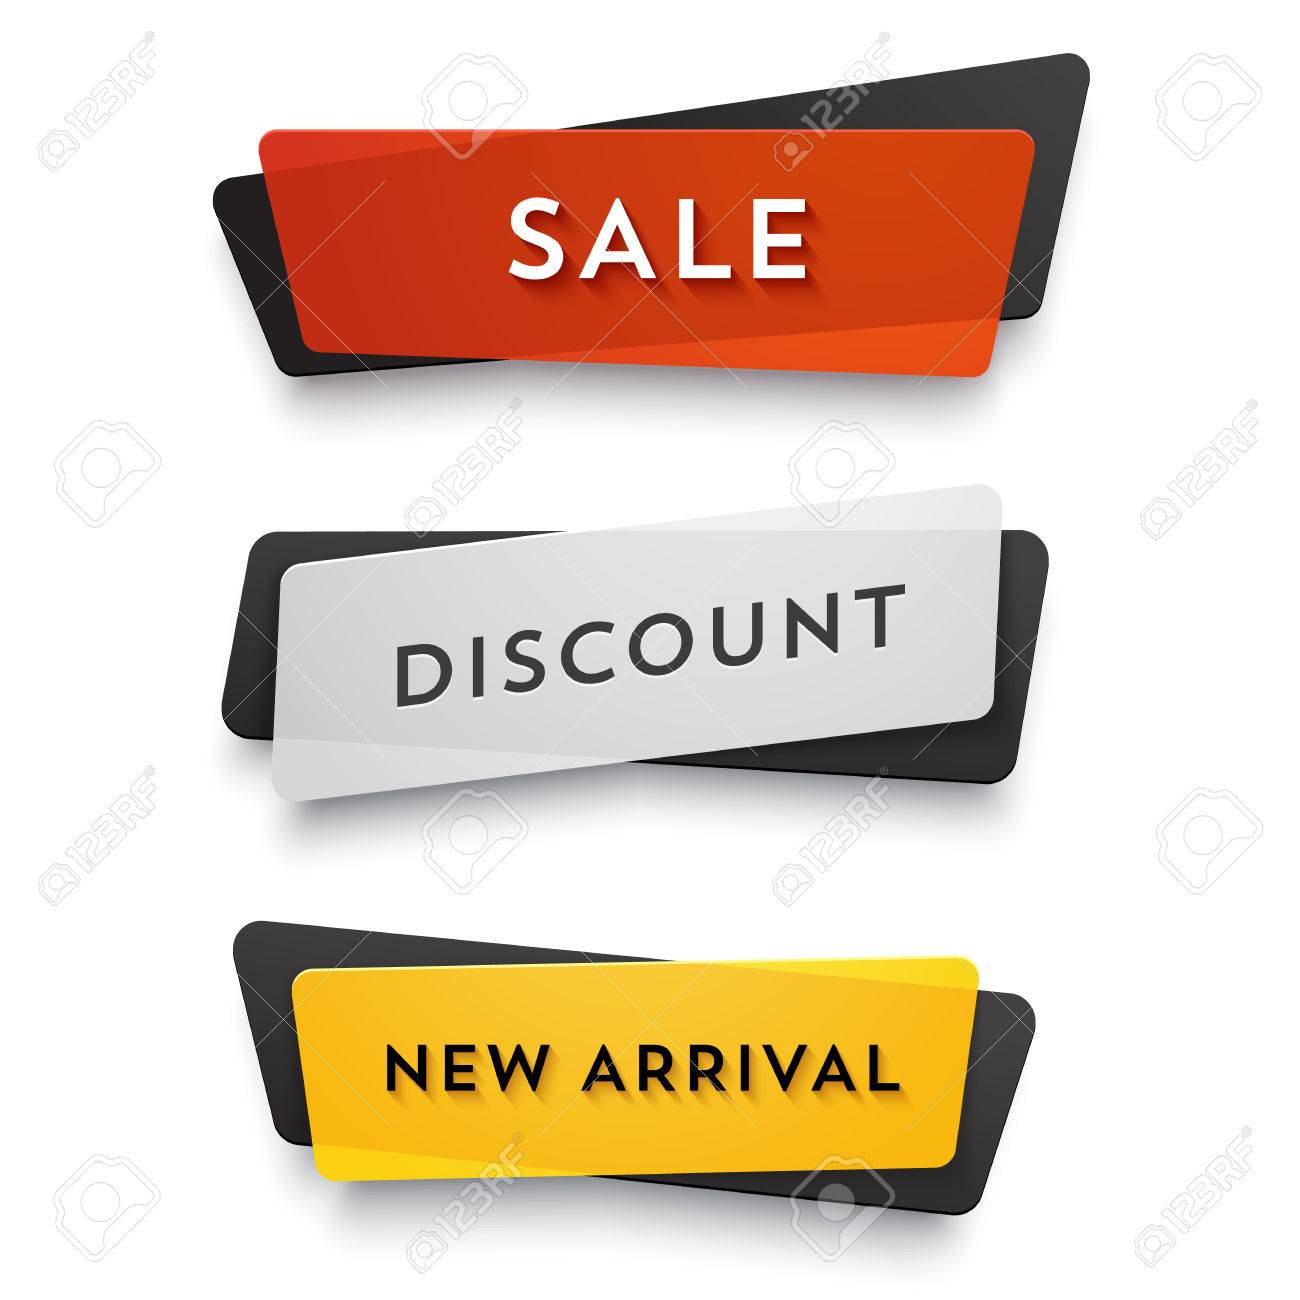 Ecommerce vector banner set. Nice plastic cards in material design style. Transparent black, white, red and yellow paper. - 50664902